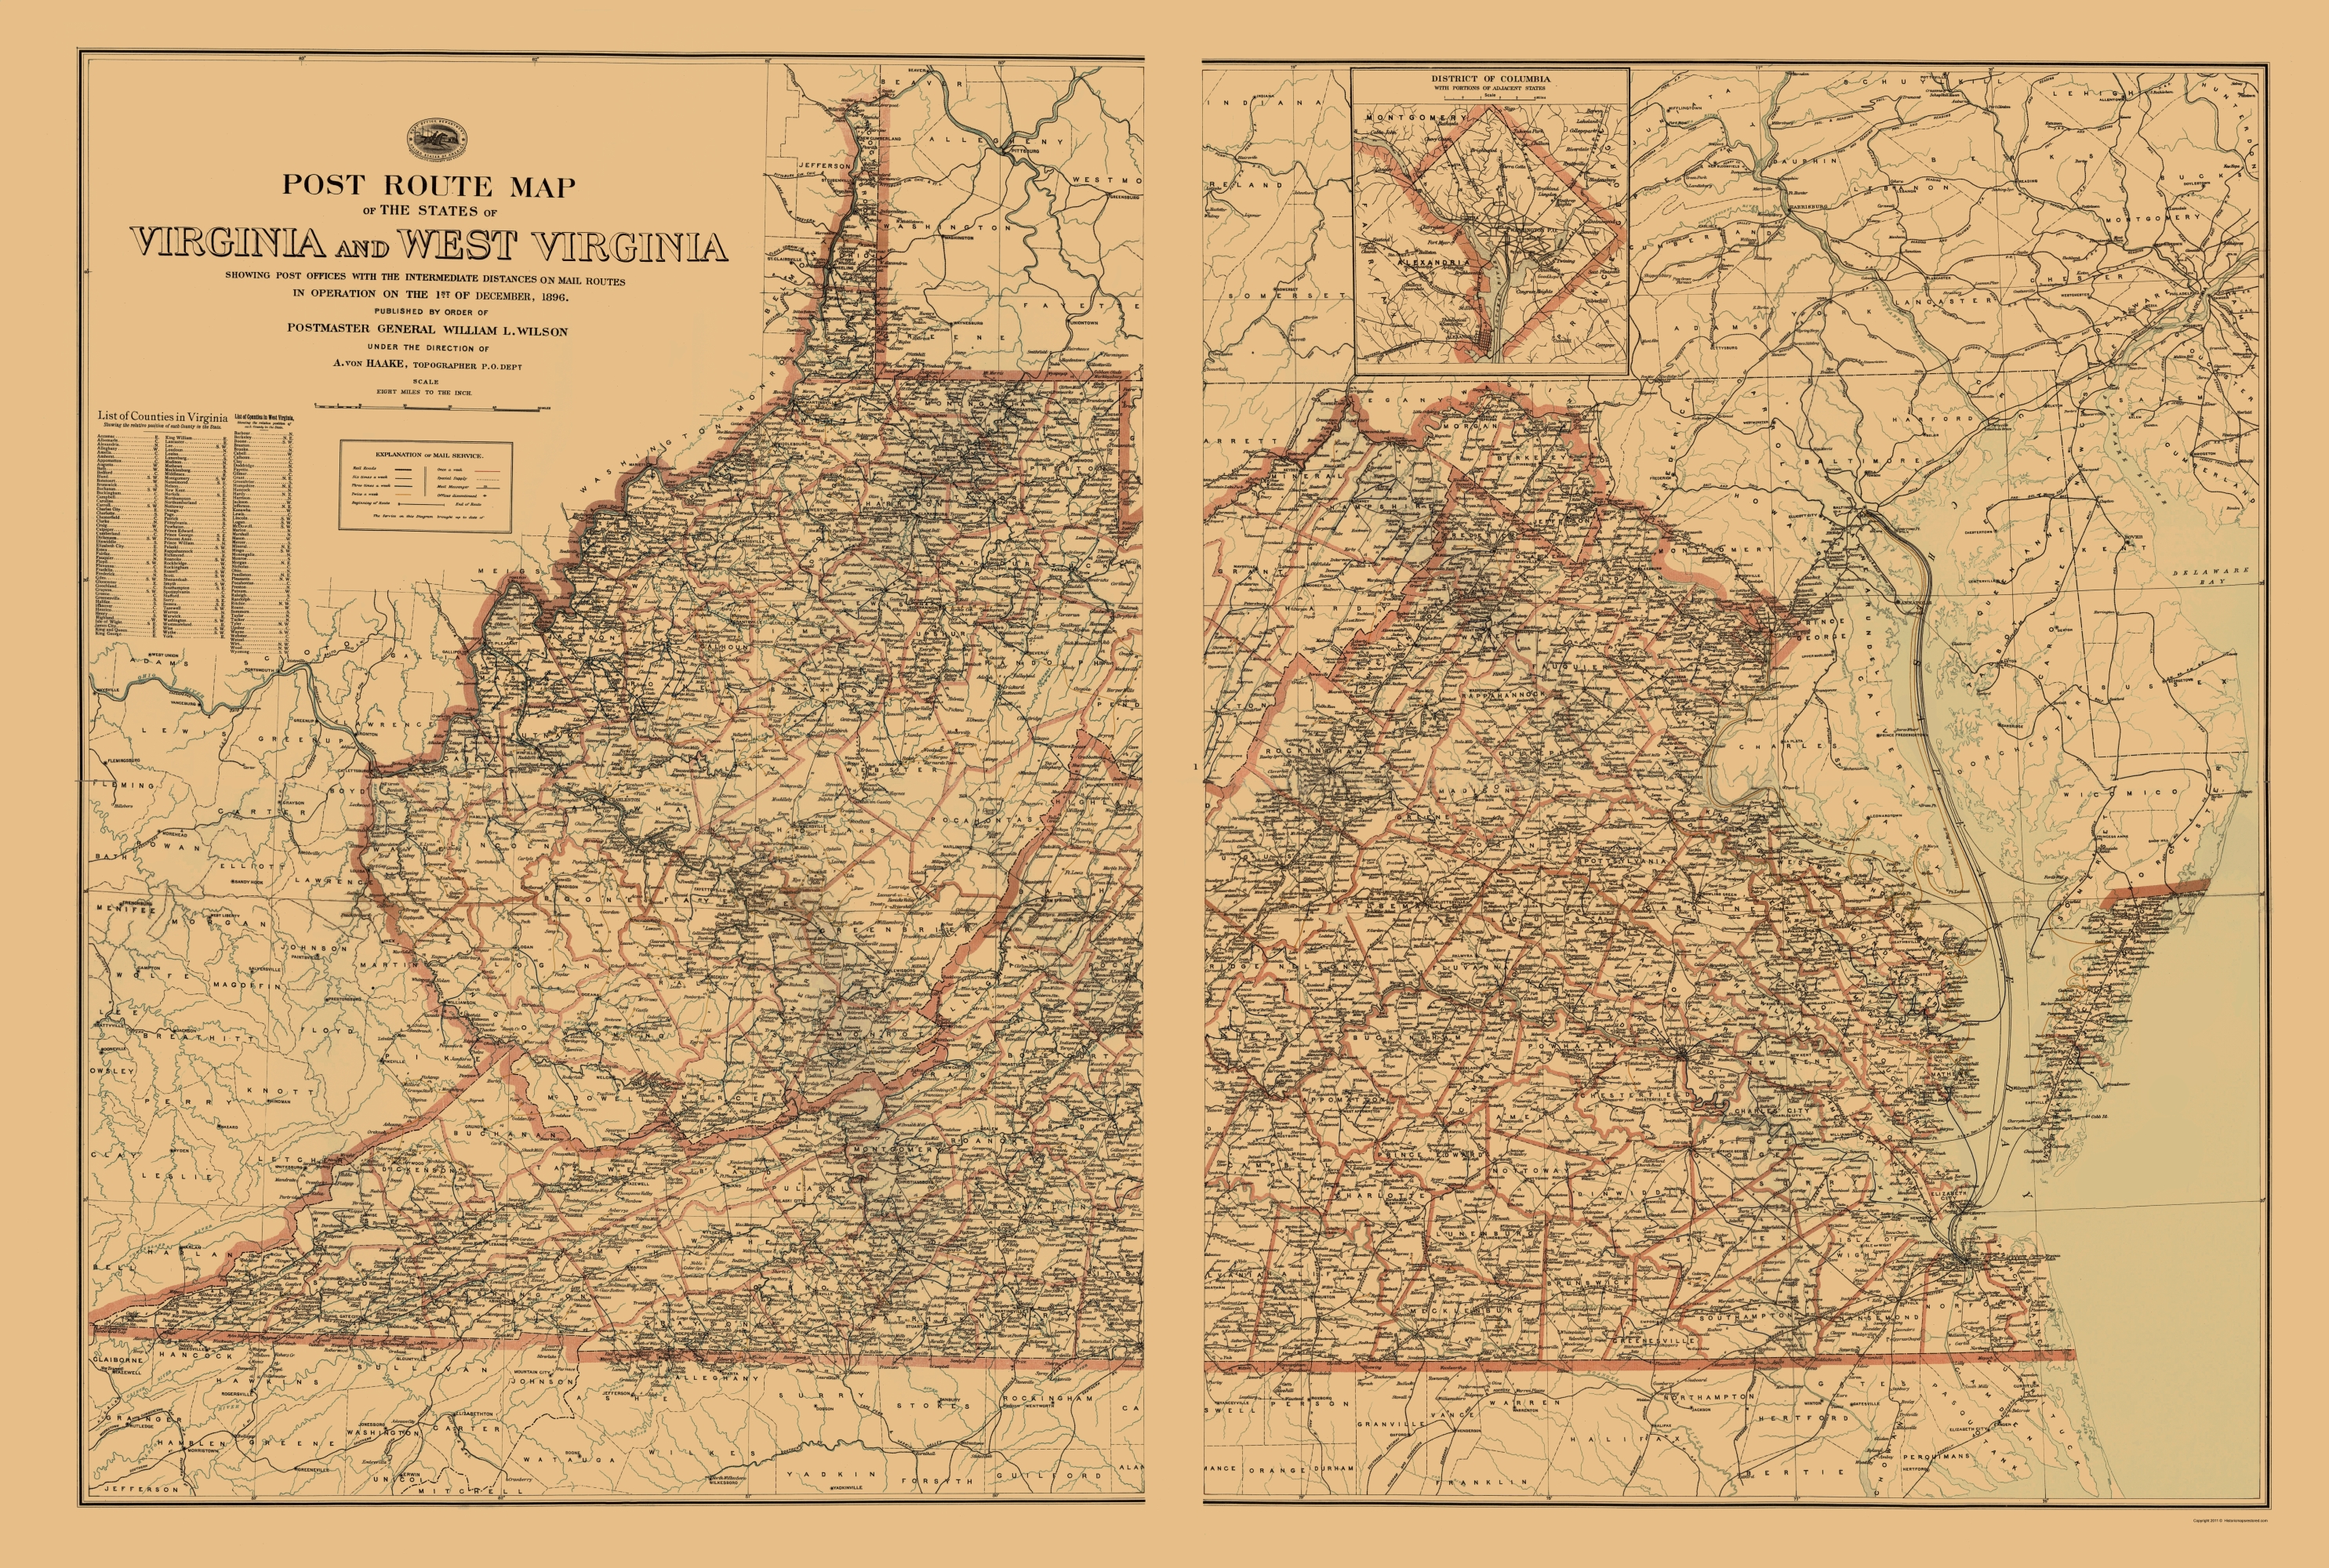 Old Map Virginia West Virginia Postal Routes - Location of cumberland va on the us map